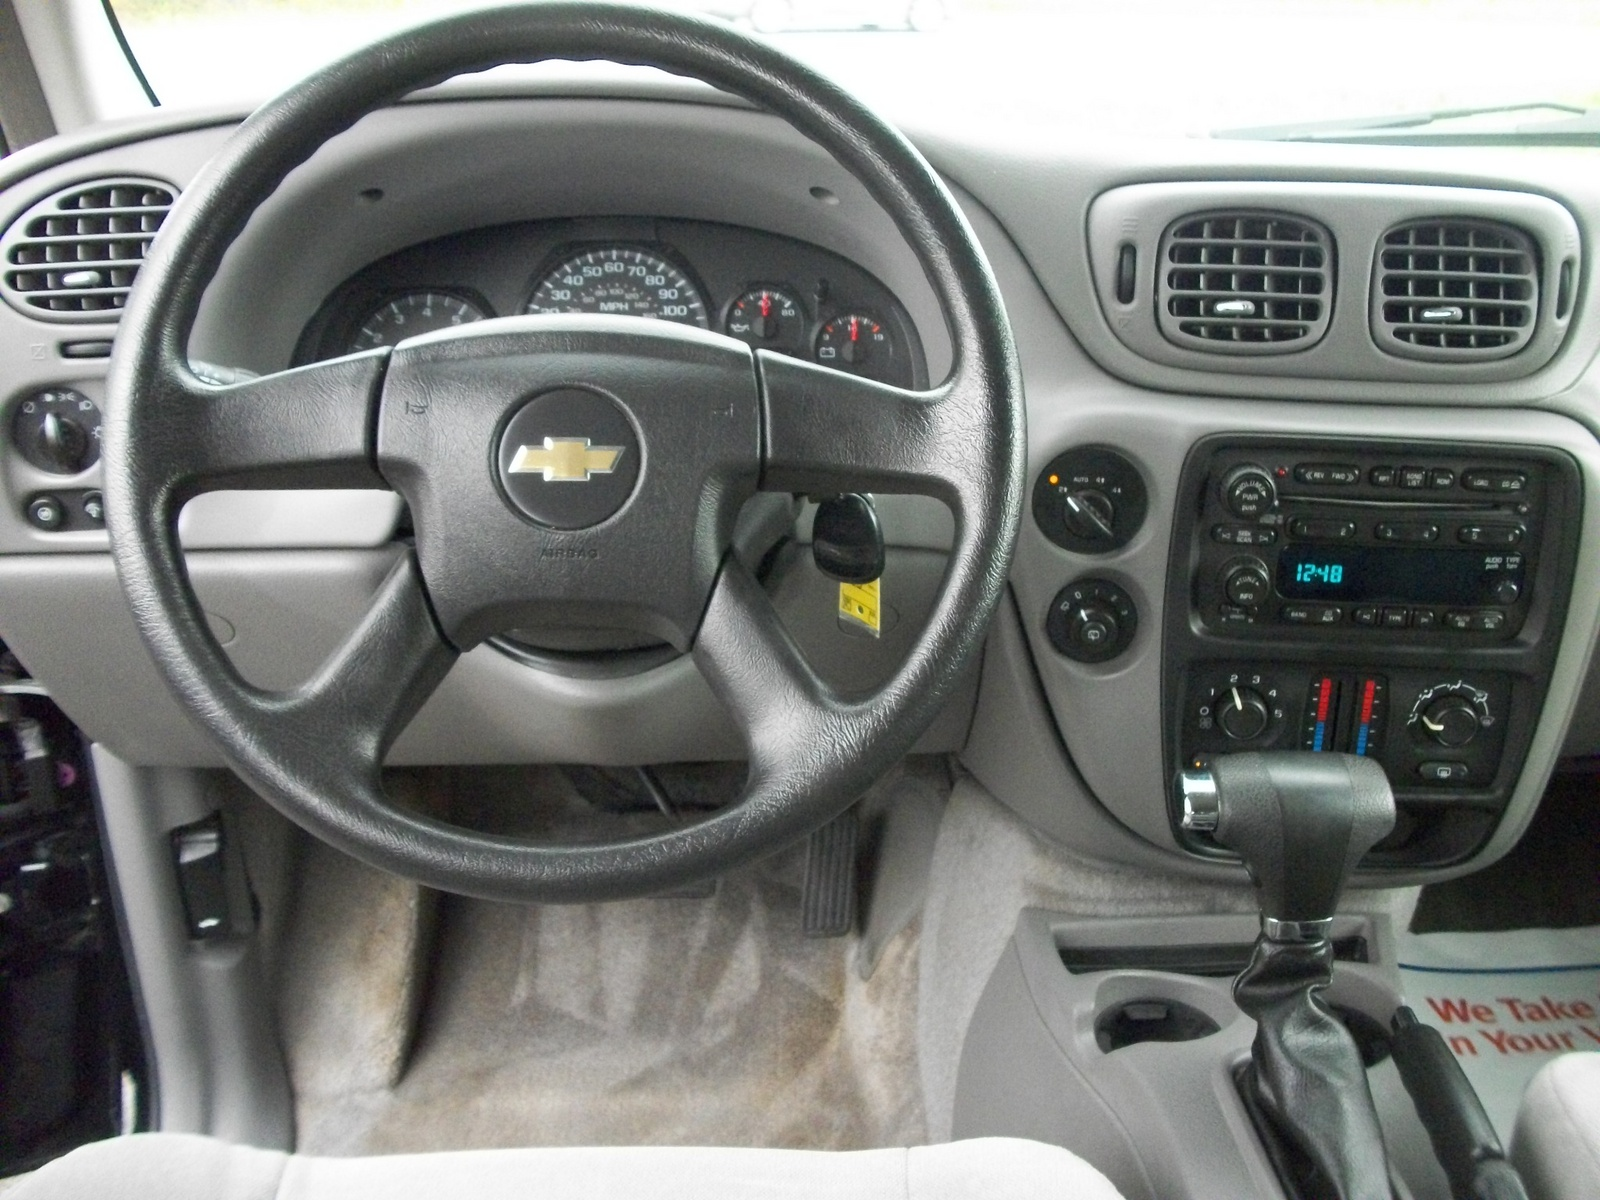 2006 chevrolet trailblazer pictures cargurus. Black Bedroom Furniture Sets. Home Design Ideas